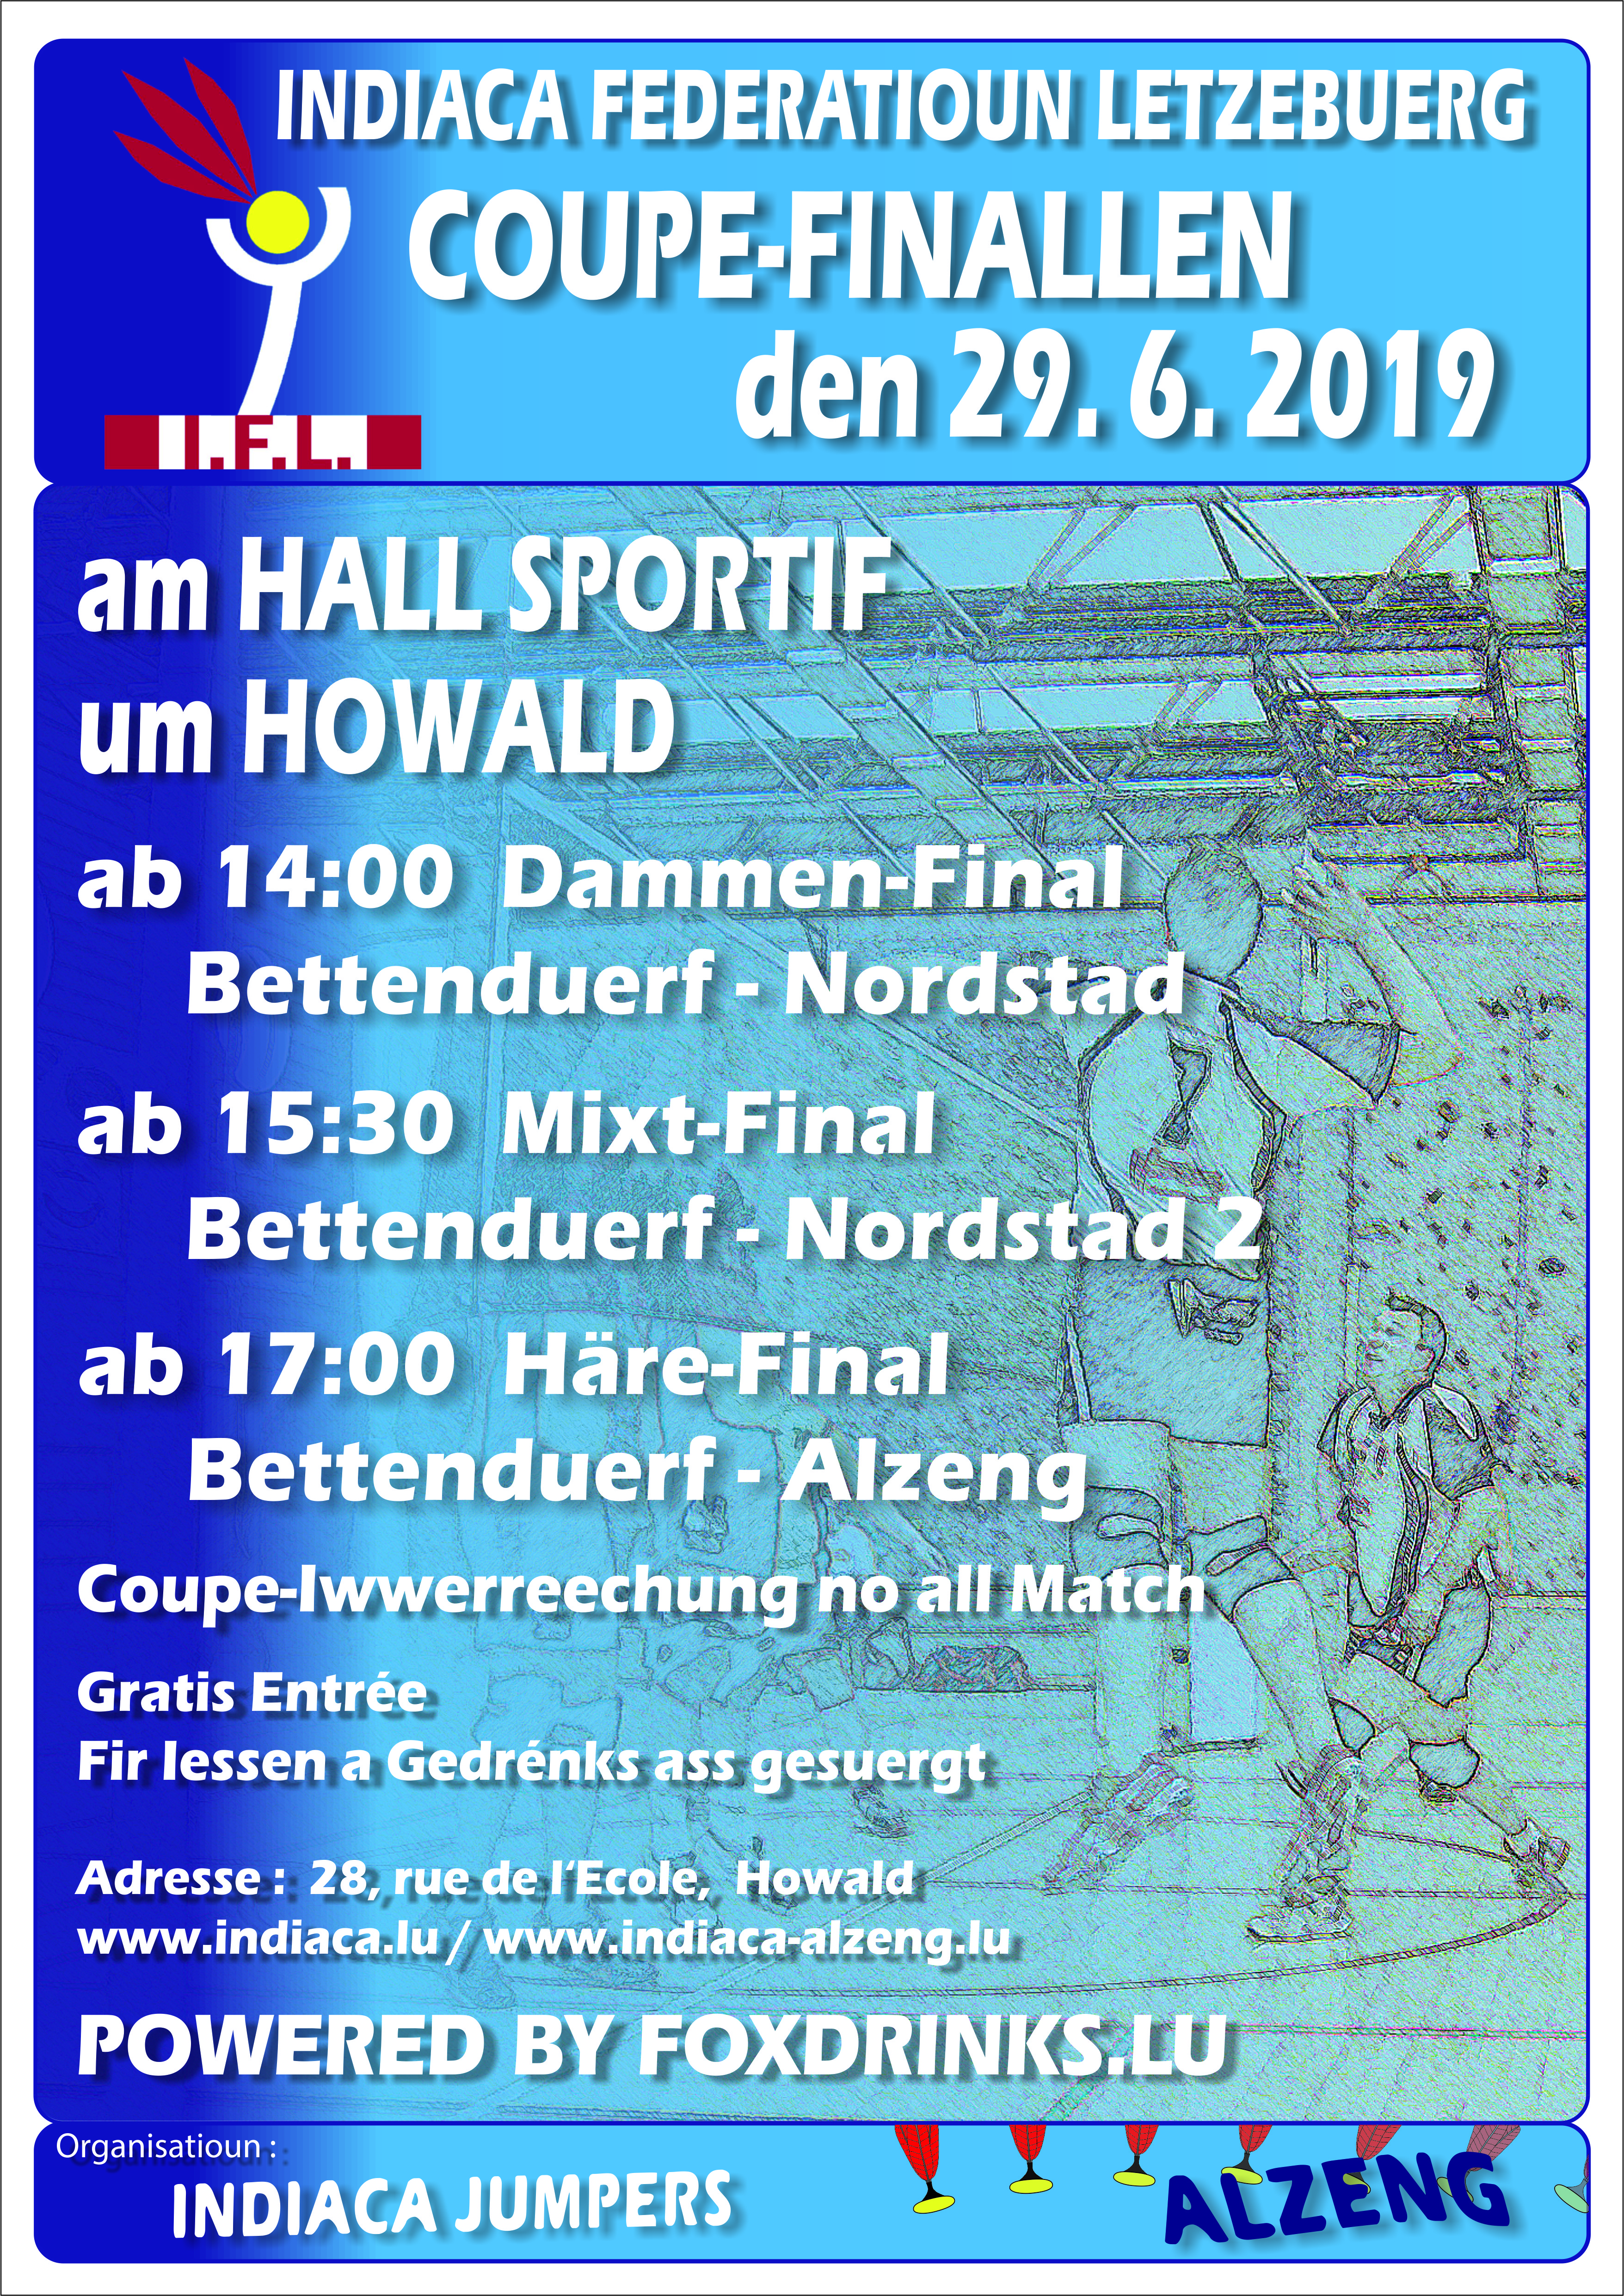 Coupe de Luxembourg um Howald